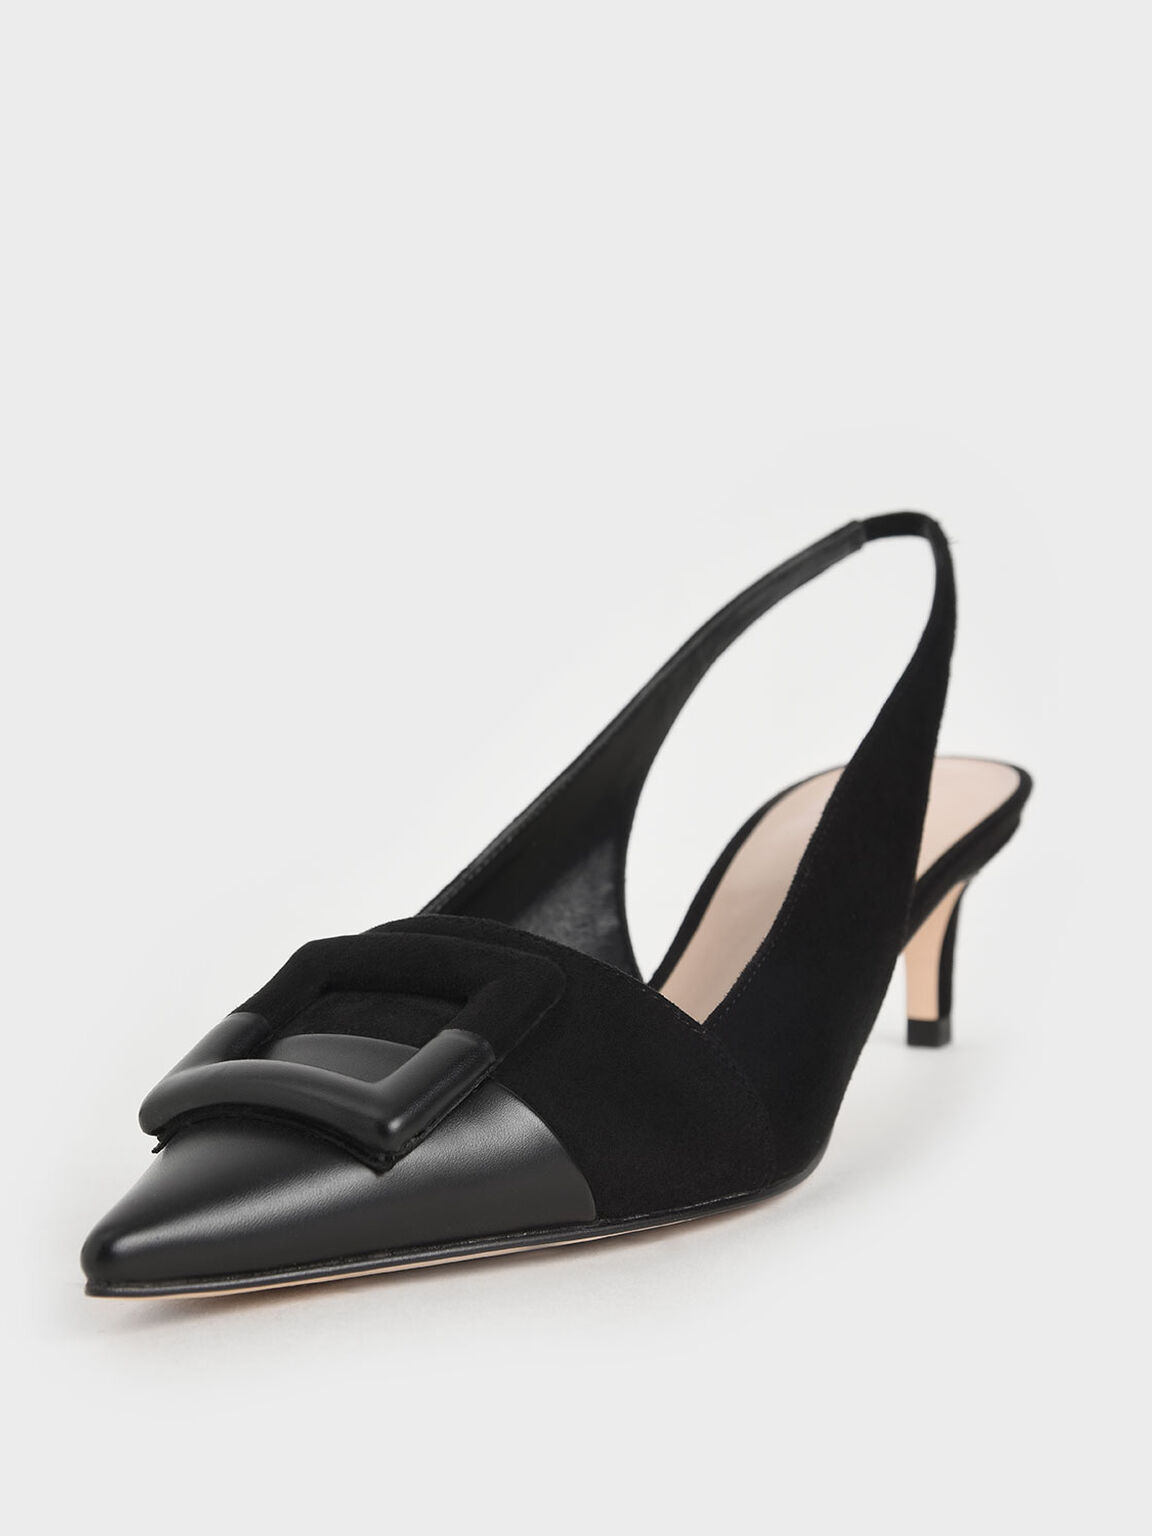 Textured Mismatched Slingback Pumps, Black, hi-res